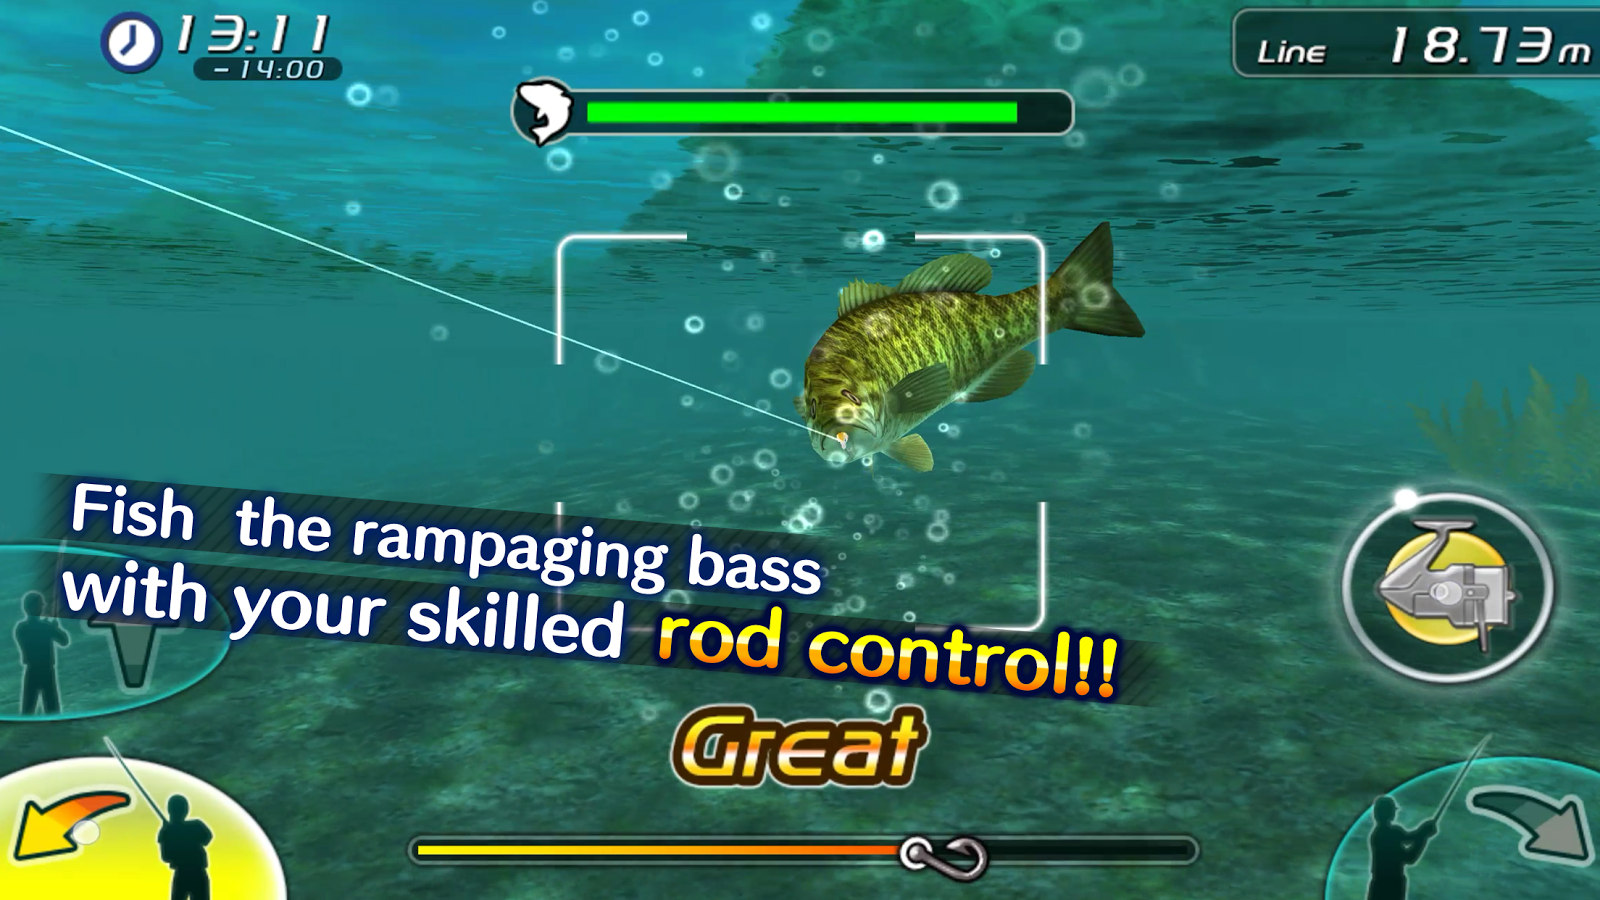 bass fishing 3d ii android apps on google play ForBass Fishing Apps